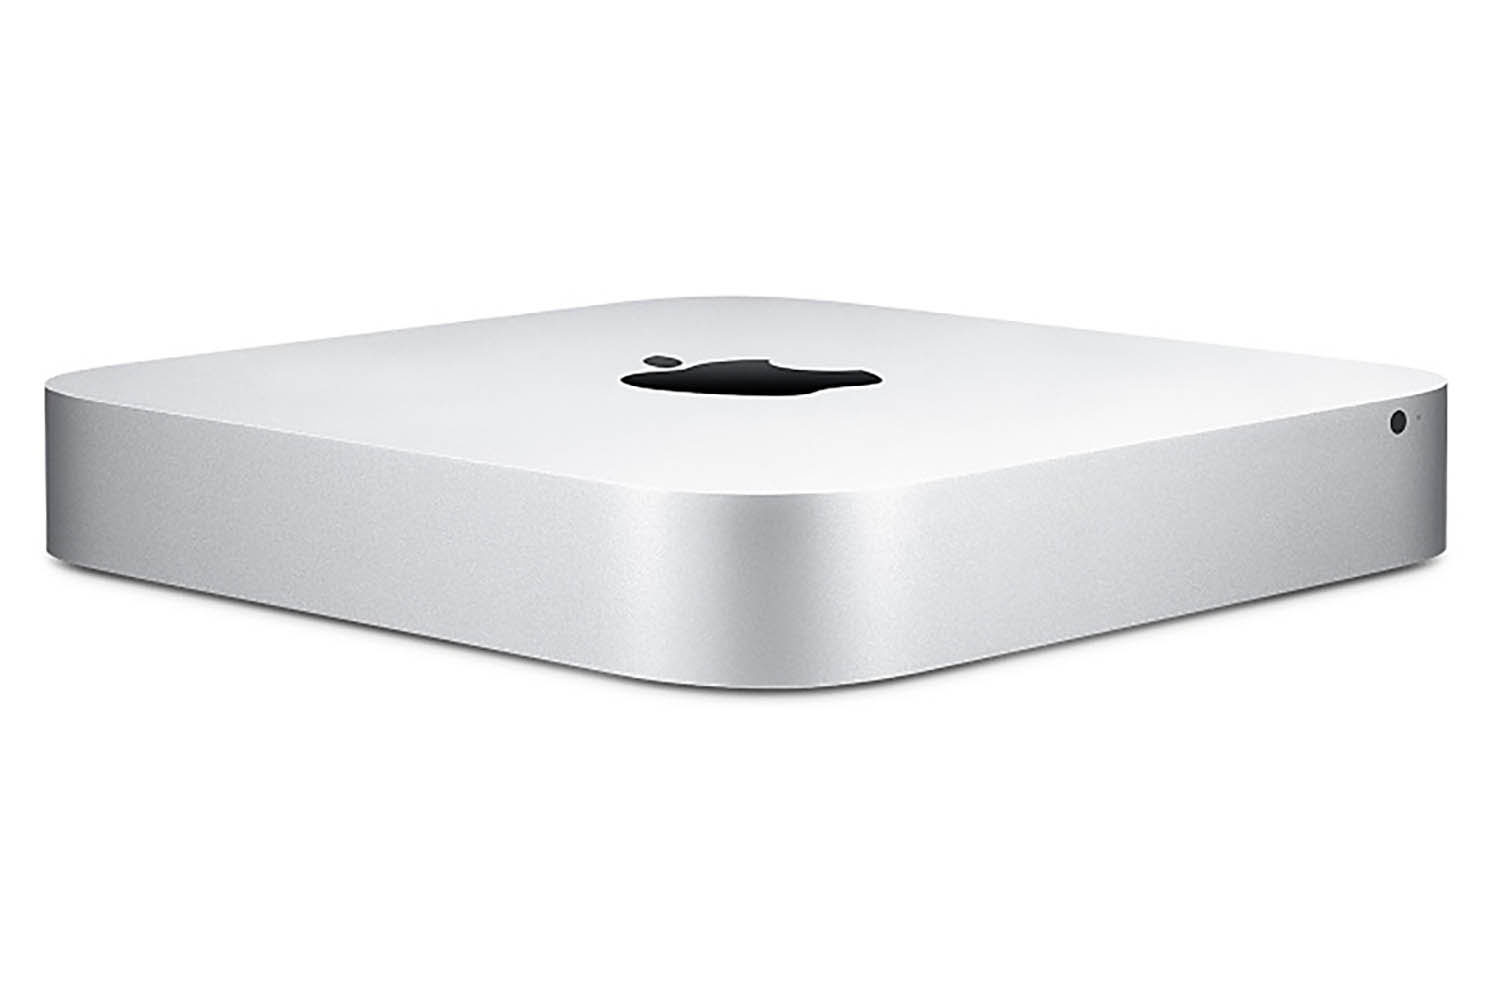 Apple Mac mini sale